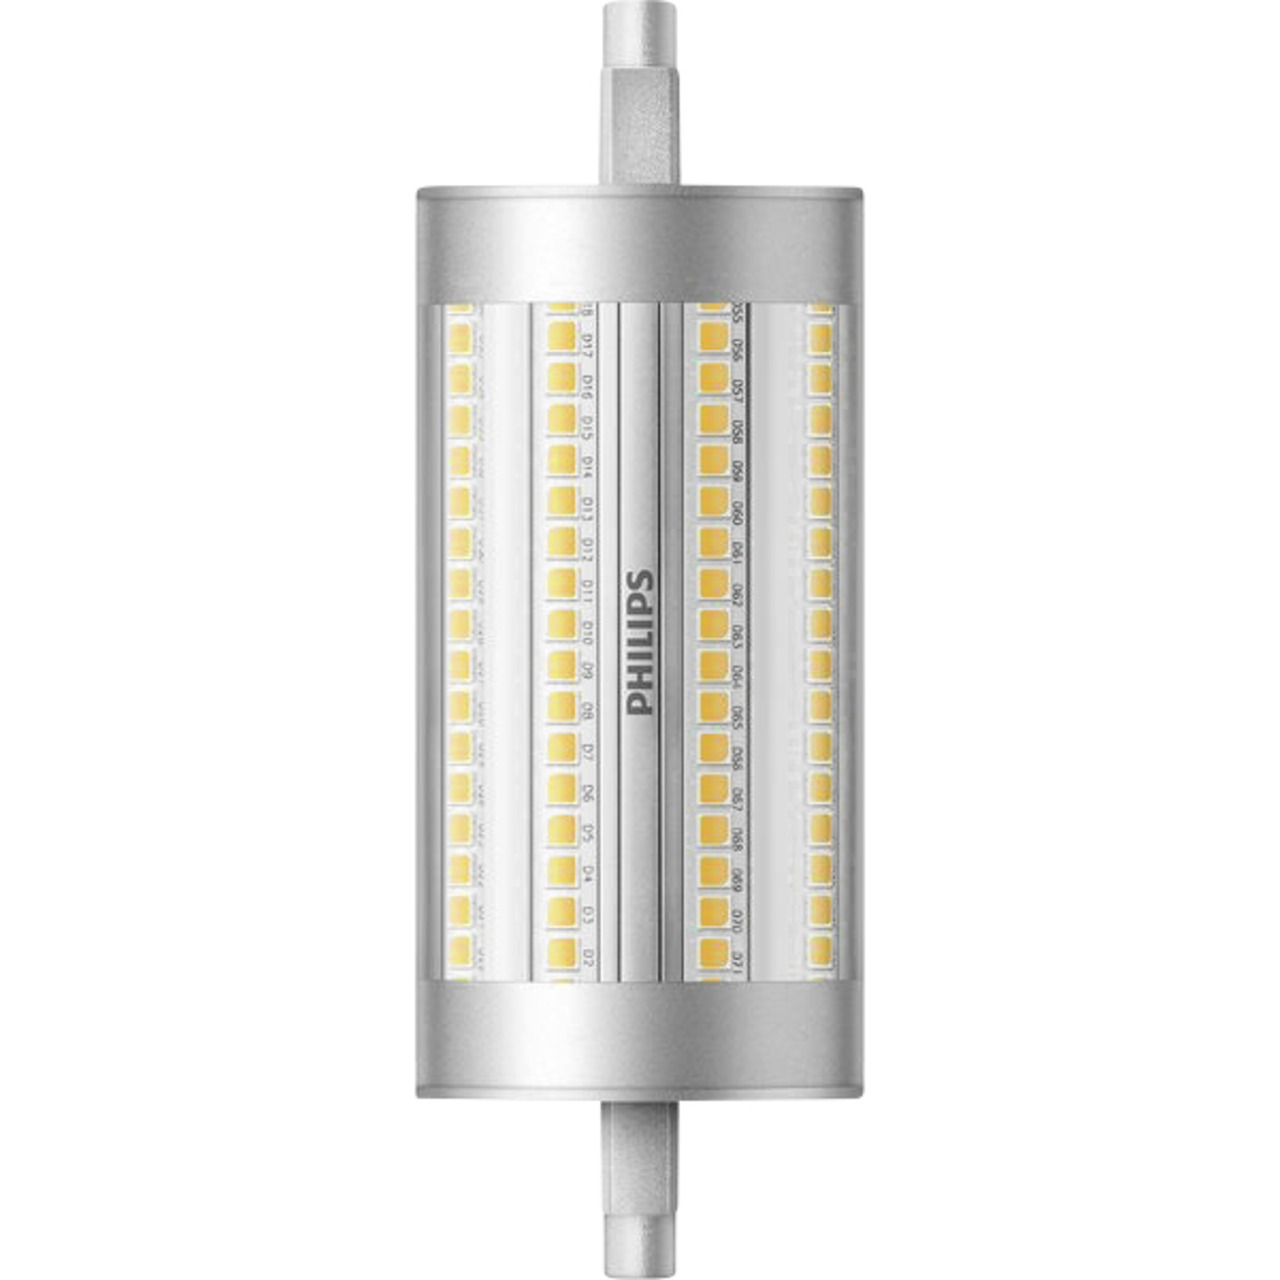 Philips CorePro LED 17-5-W-R7s-LED-Lampe- 118 mm- warmweiund-223 - dimmbar